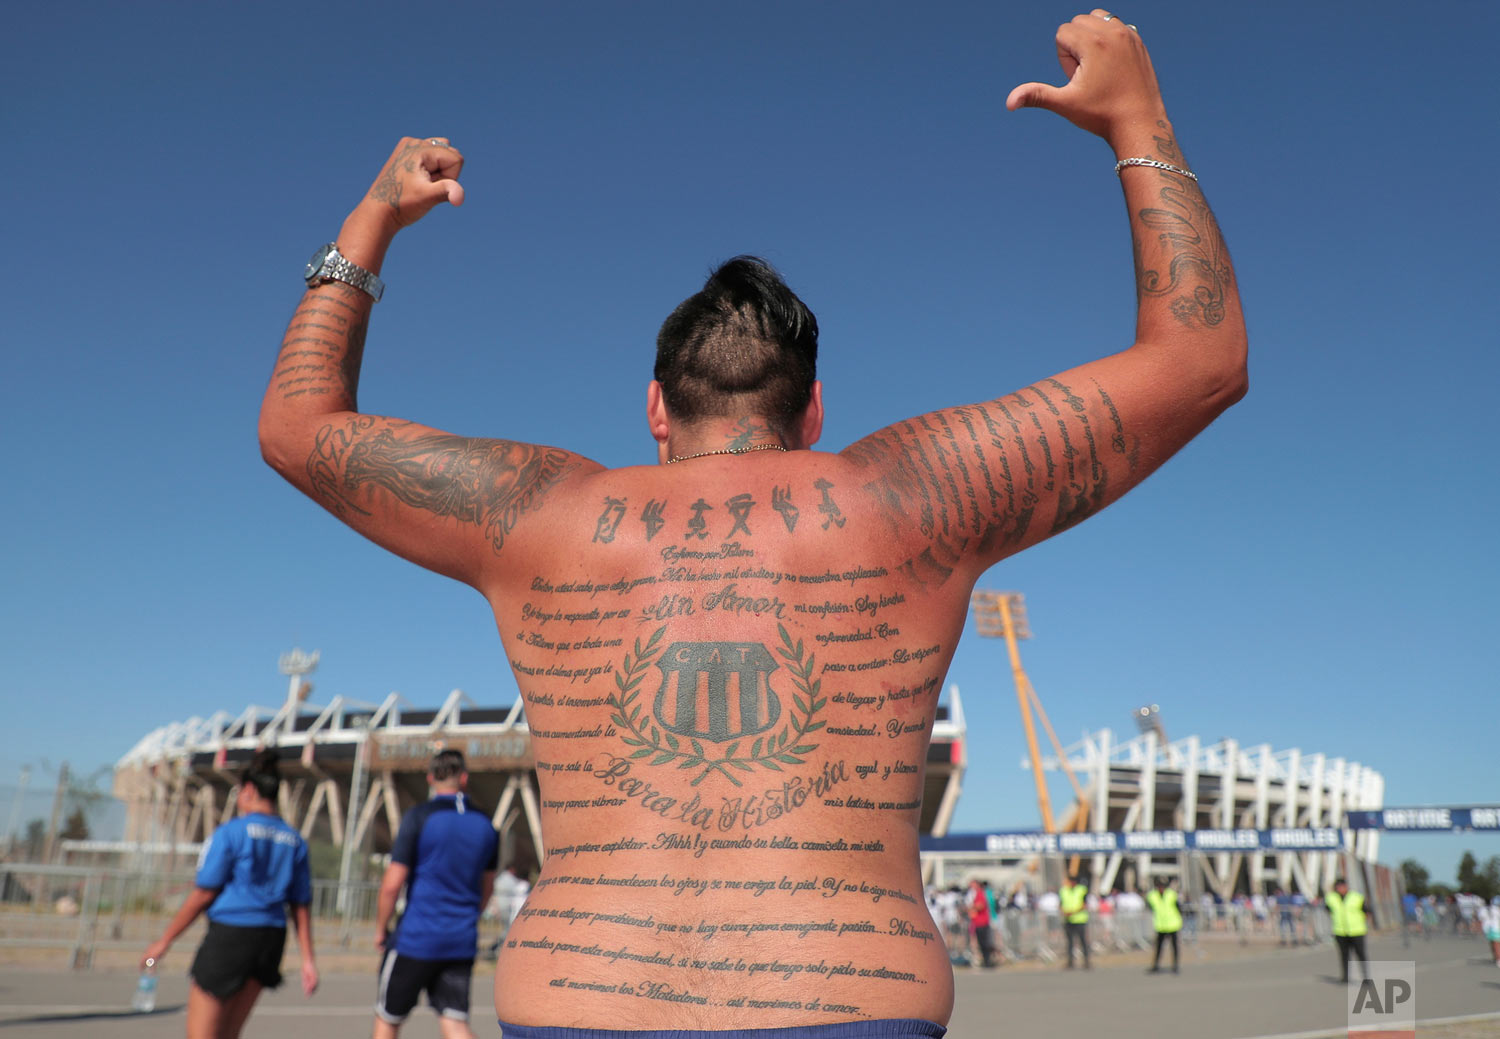 A fan of Argentina's Talleres soccer team shows off his soccer team related tattoo before attending a Copa Libertadores soccer match against Chile's Palestino in Cordoba, Argentina, Feb. 20, 2019. (AP Photo/Nicolas Aguilera)